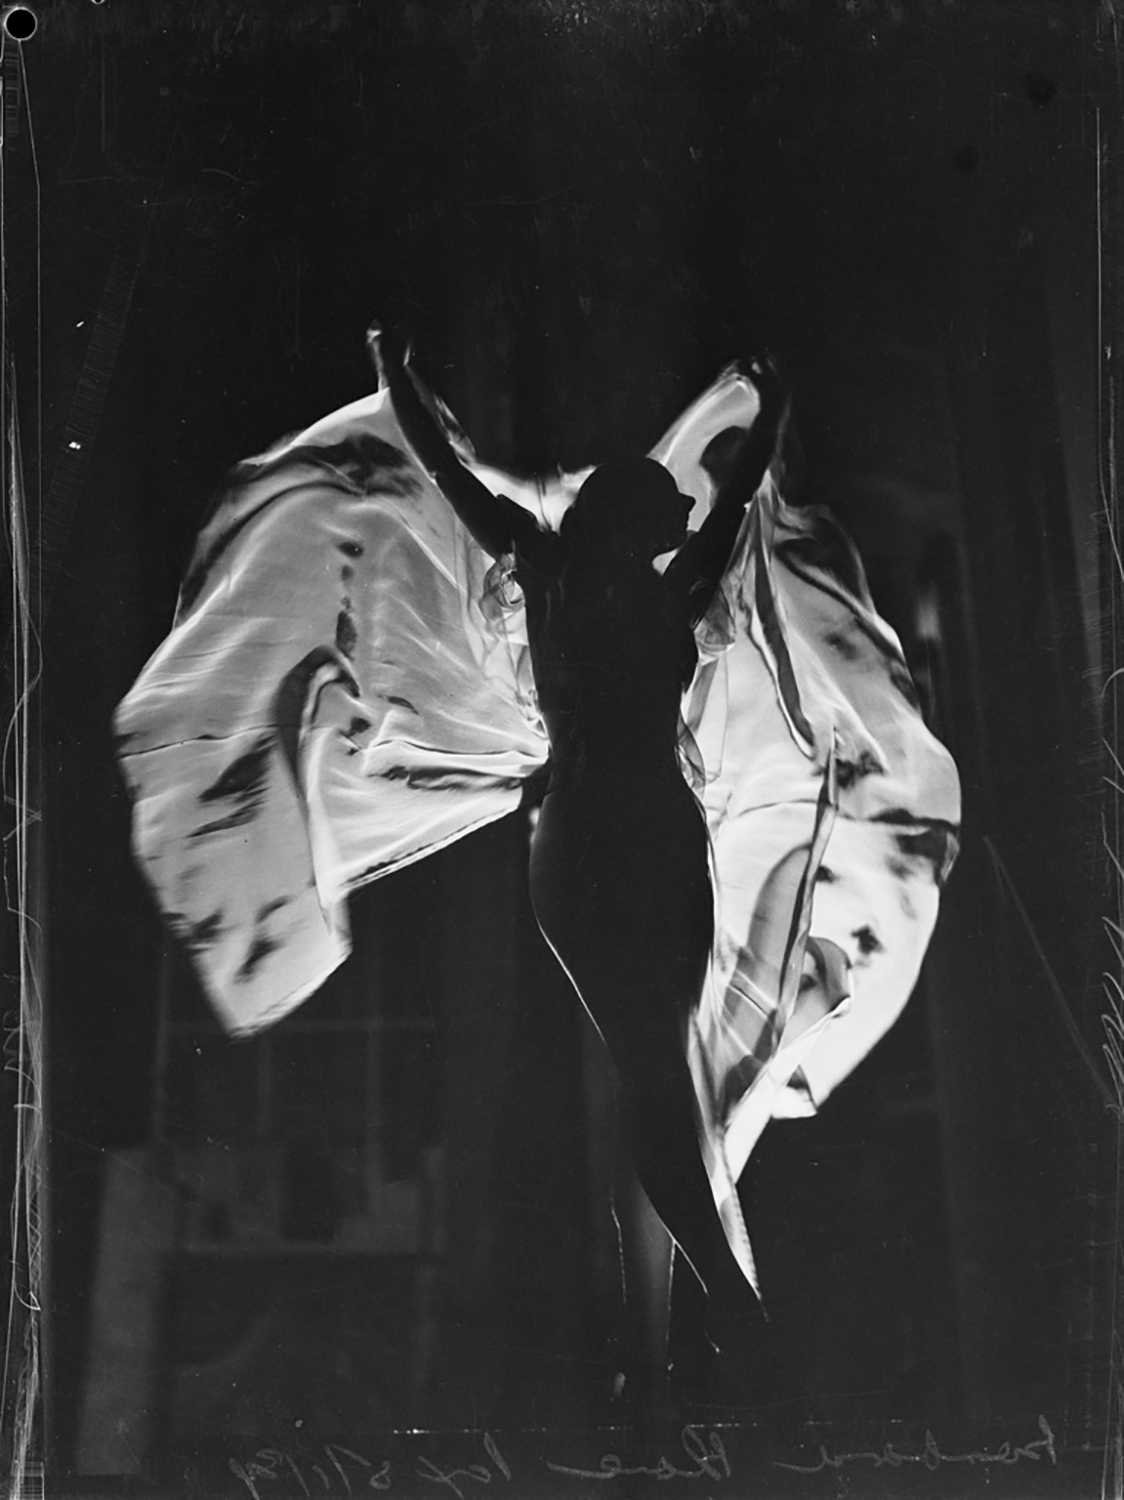 Barbara Blane, shadow-ballet dancer at the Tivoli, 5 January 1939, by Ray Olson